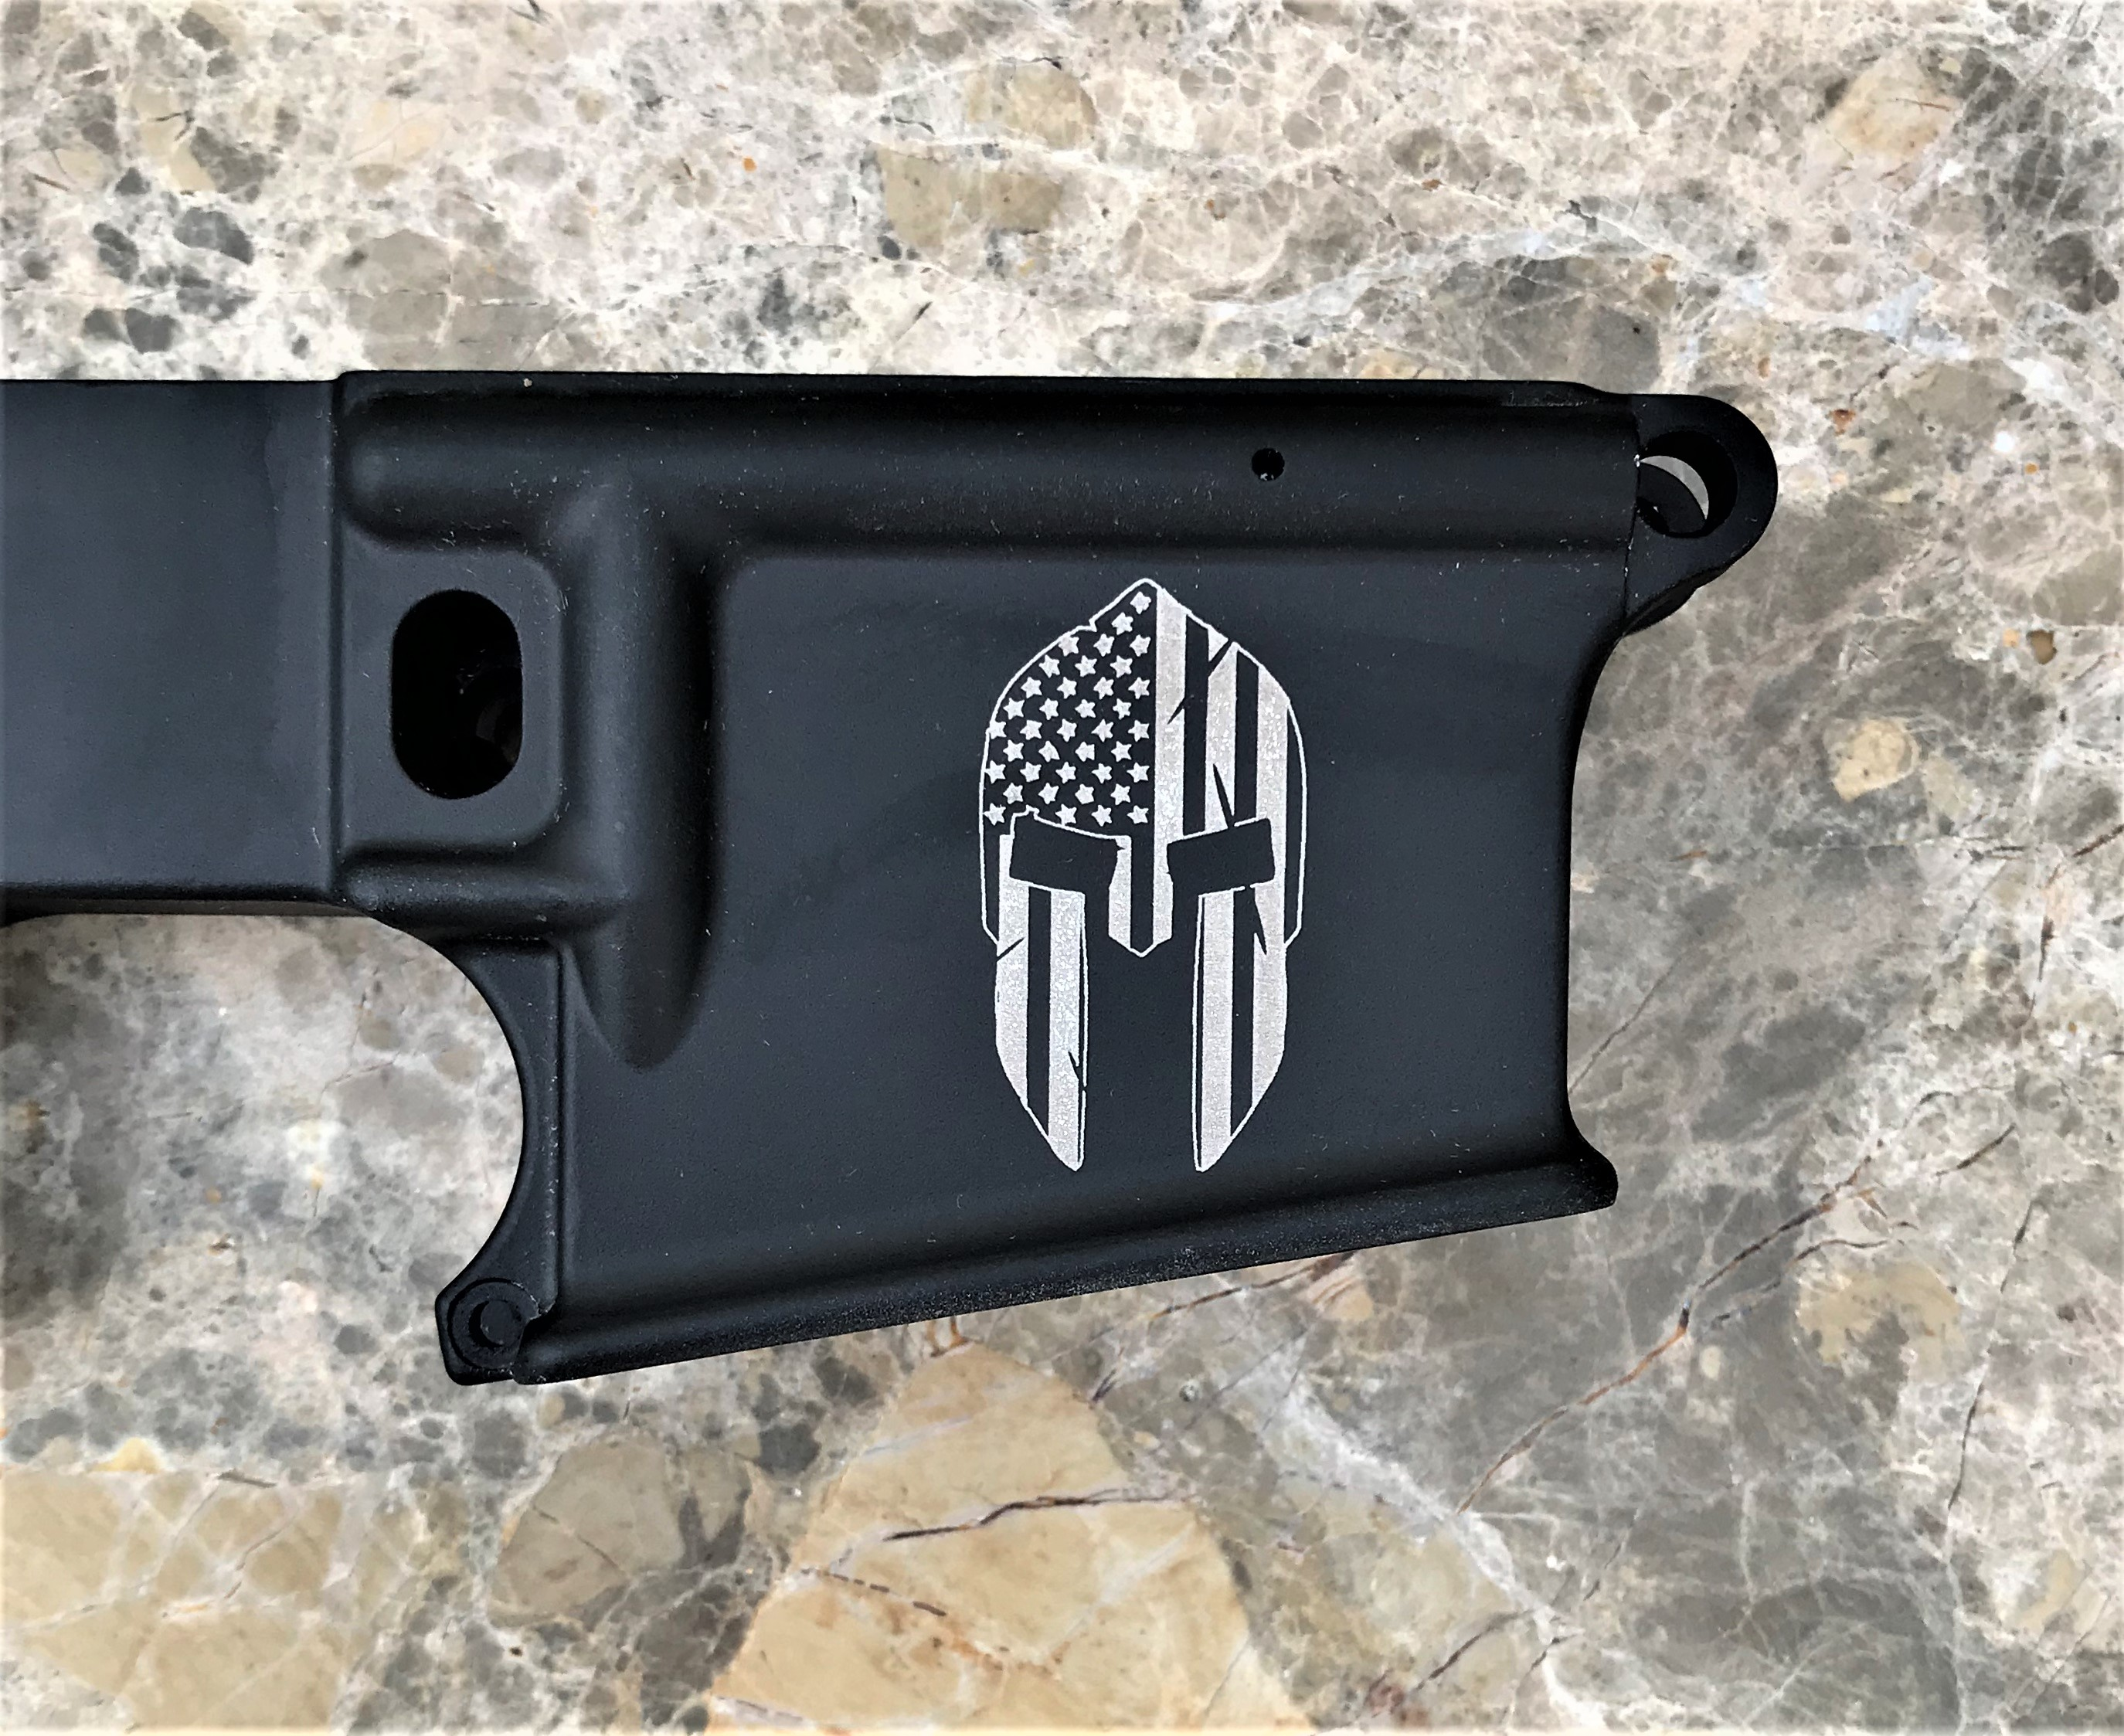 AR-15 Flag Spartan helmet 80% LOWER